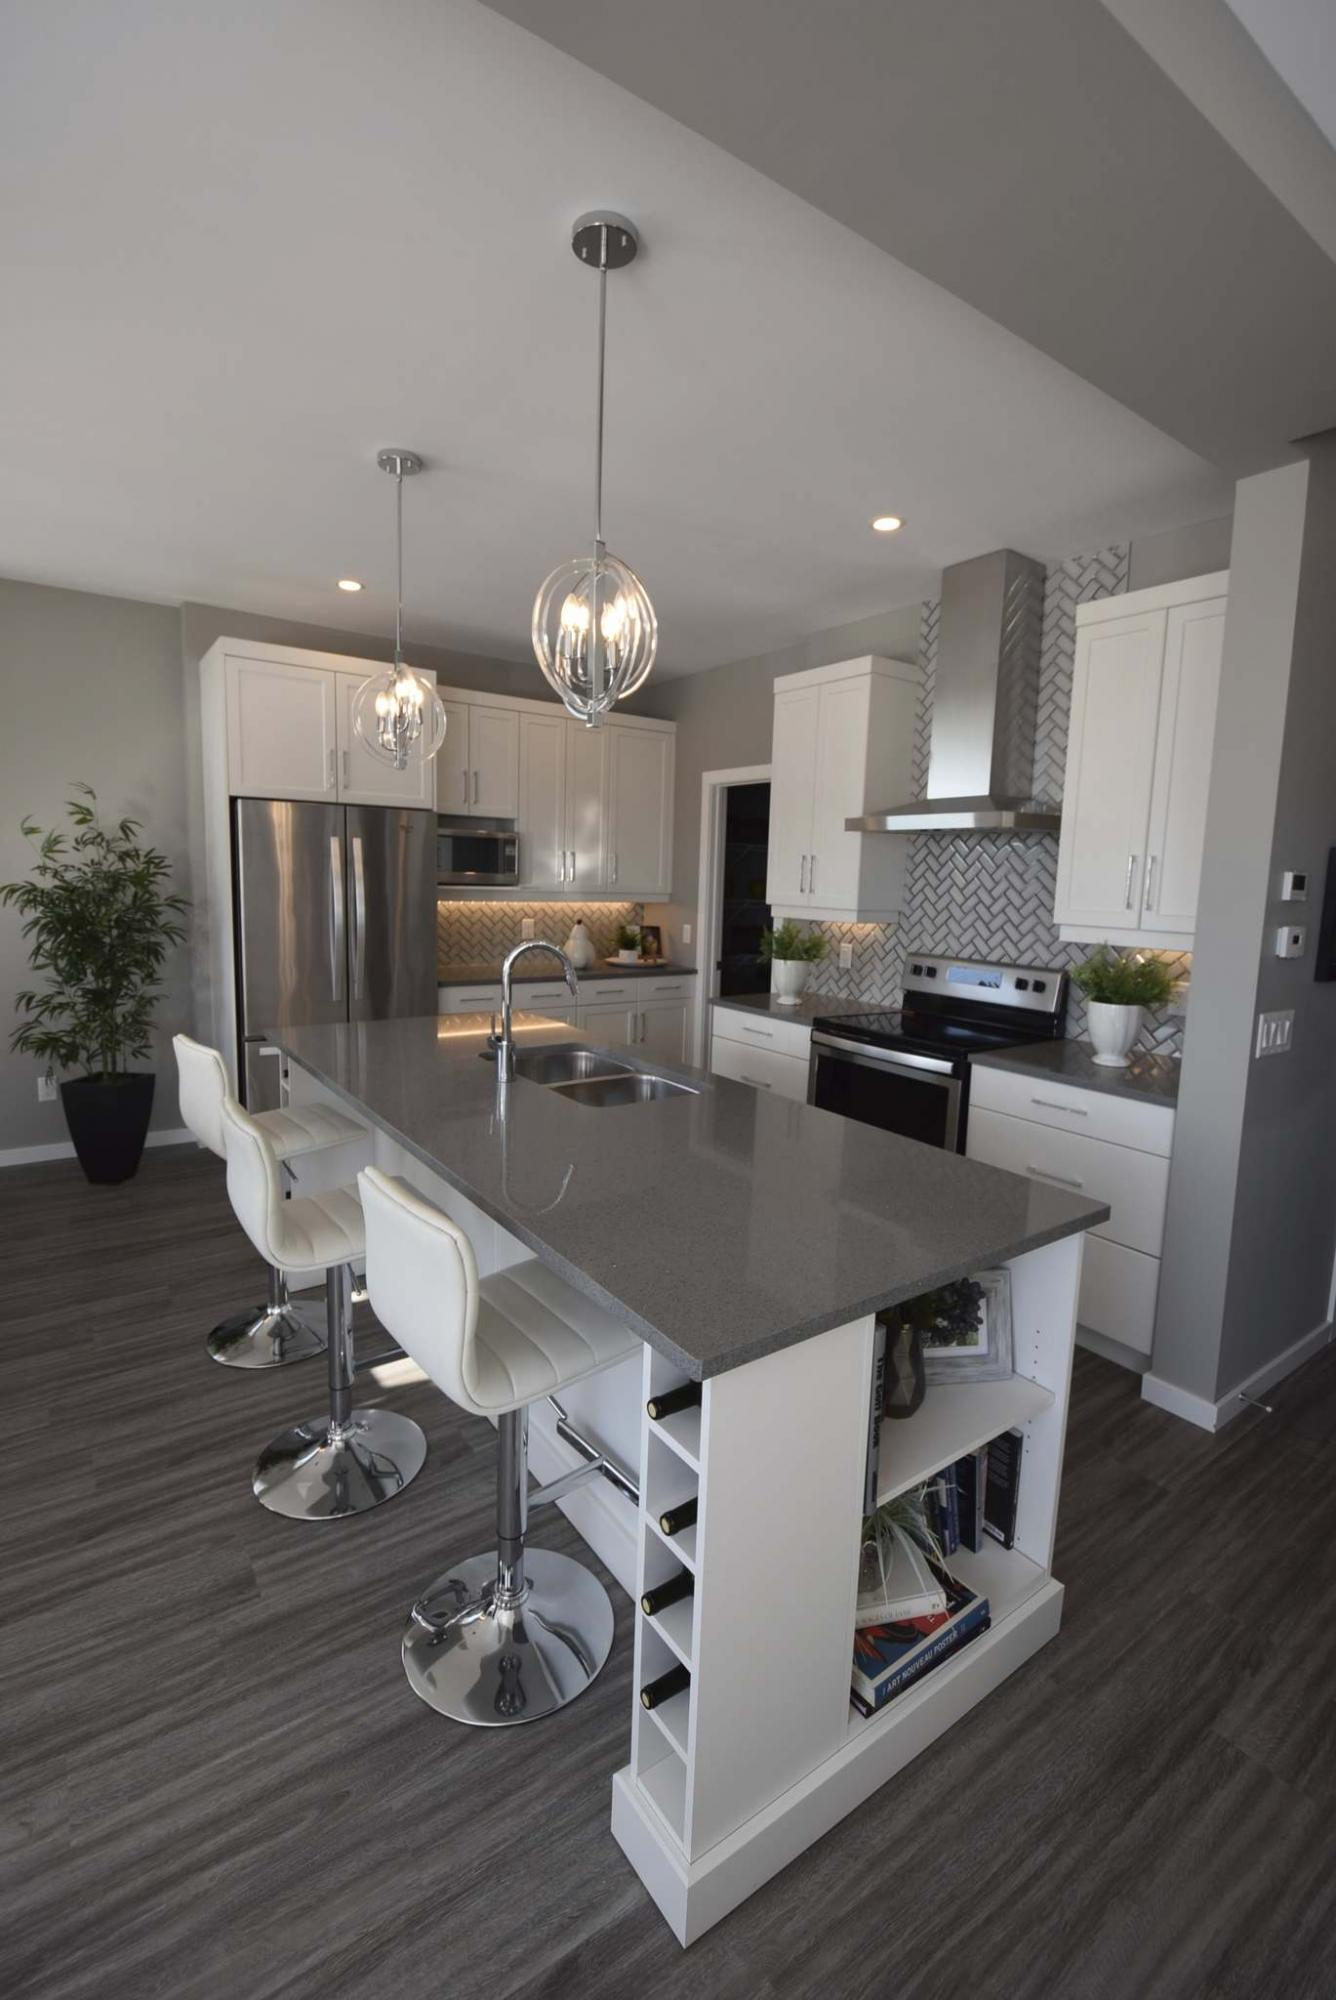 <p>Todd Lewys / Winnipeg Free Press</p><p>The island kitchen in this spacious two-storey home is the definition of modern style and function.</p>